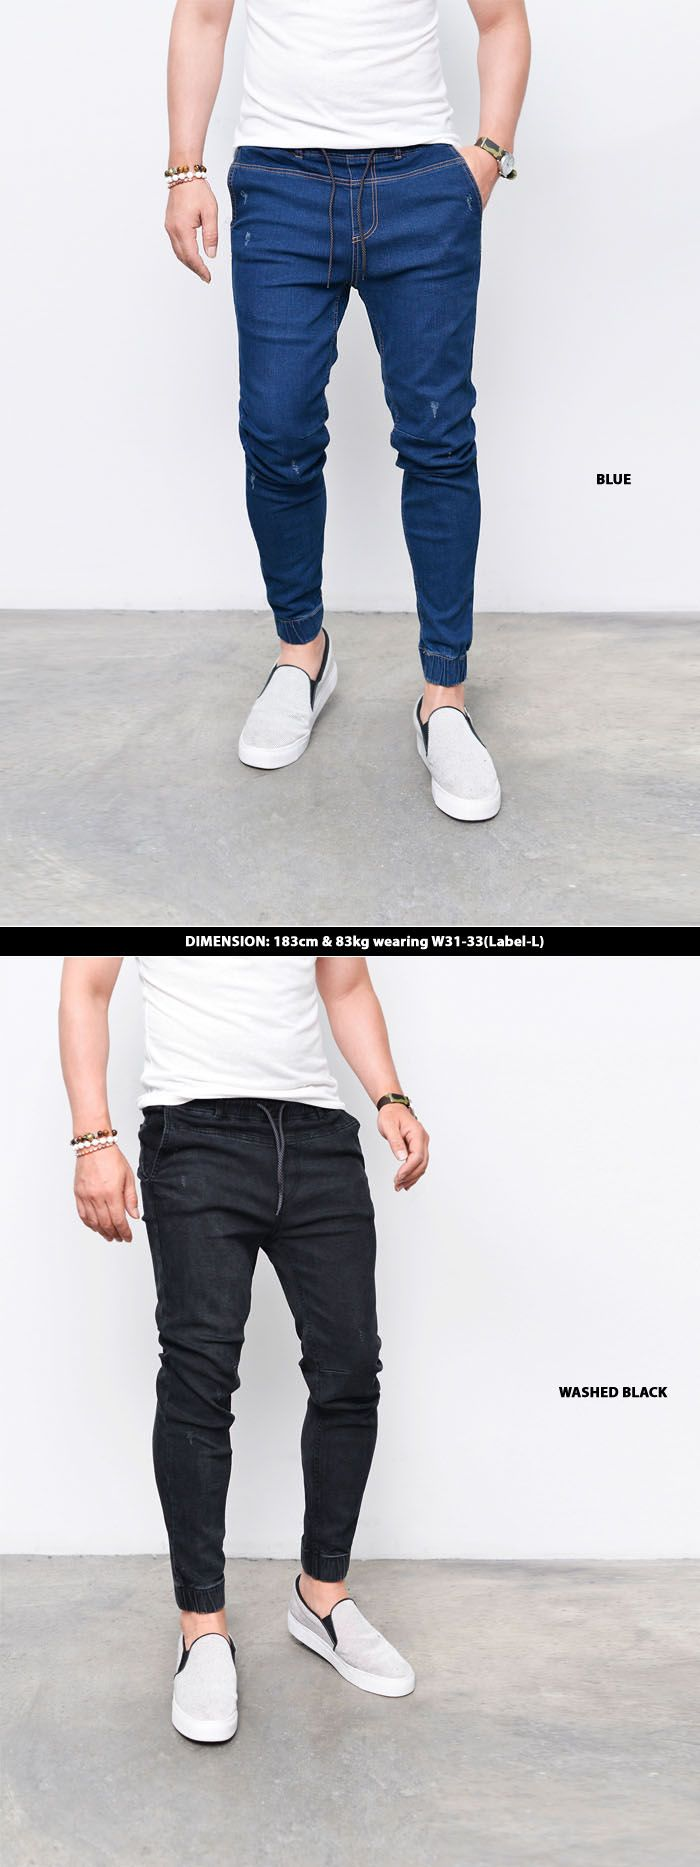 Bottoms :: Slim Semi Baggy Denim Jogger-Jeans 245 - Mens Fashion Clothing For An Attractive Guy Look